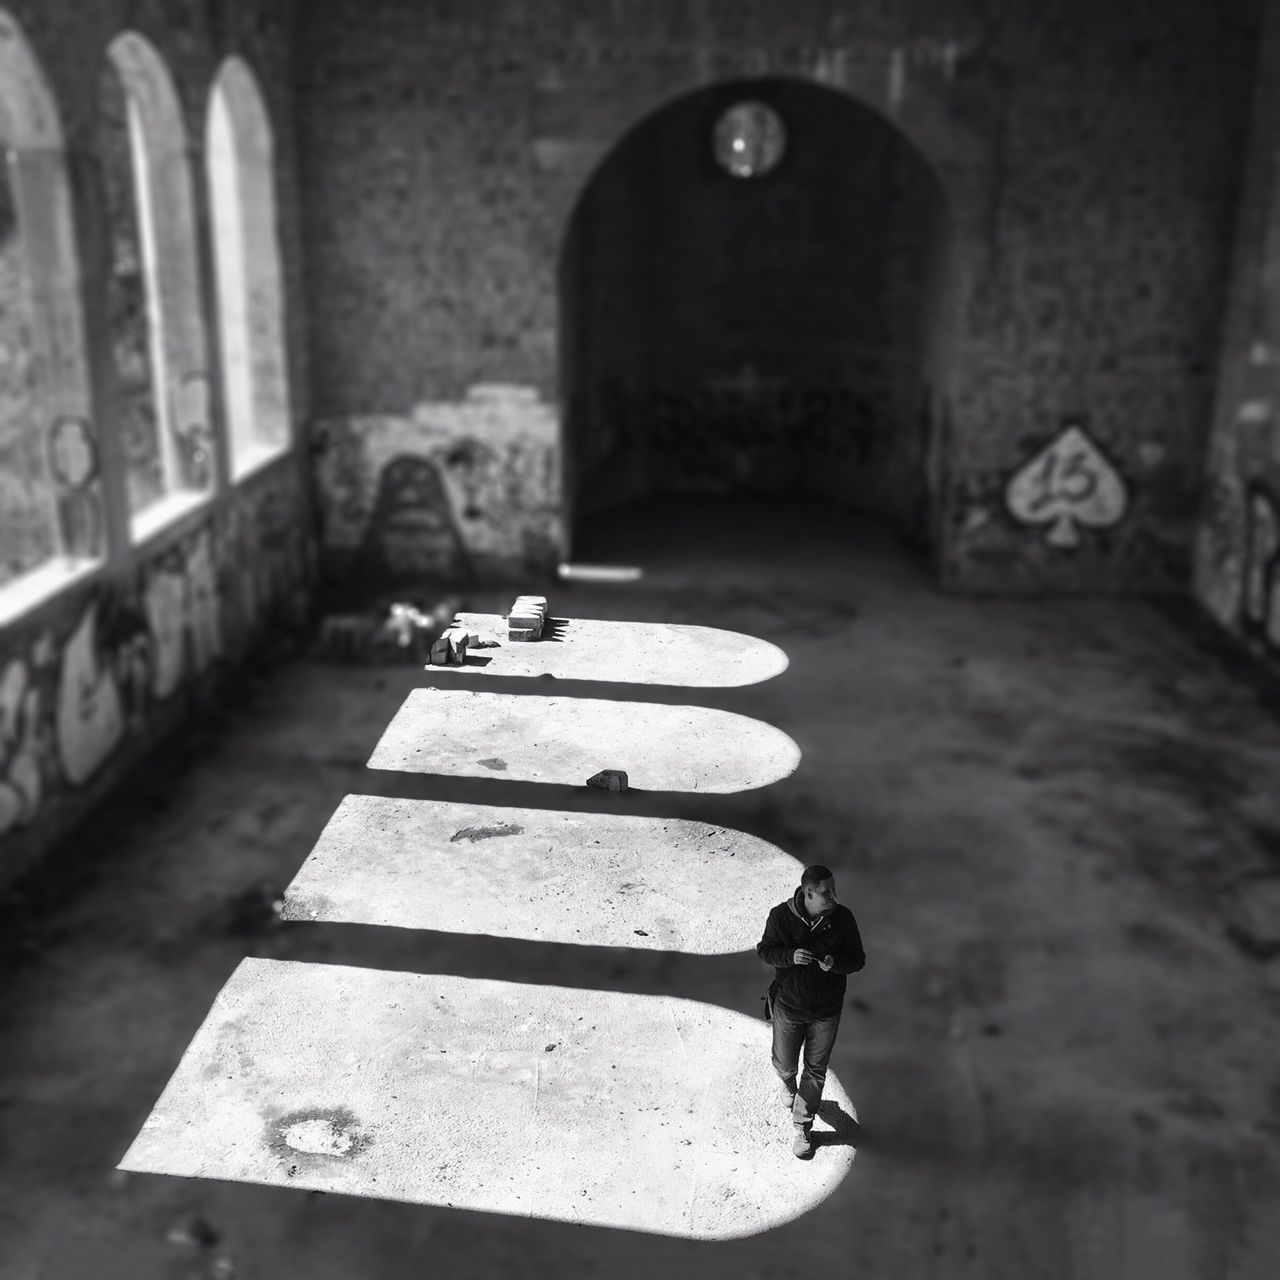 High Angle View Of Man Walking In Abandoned Building